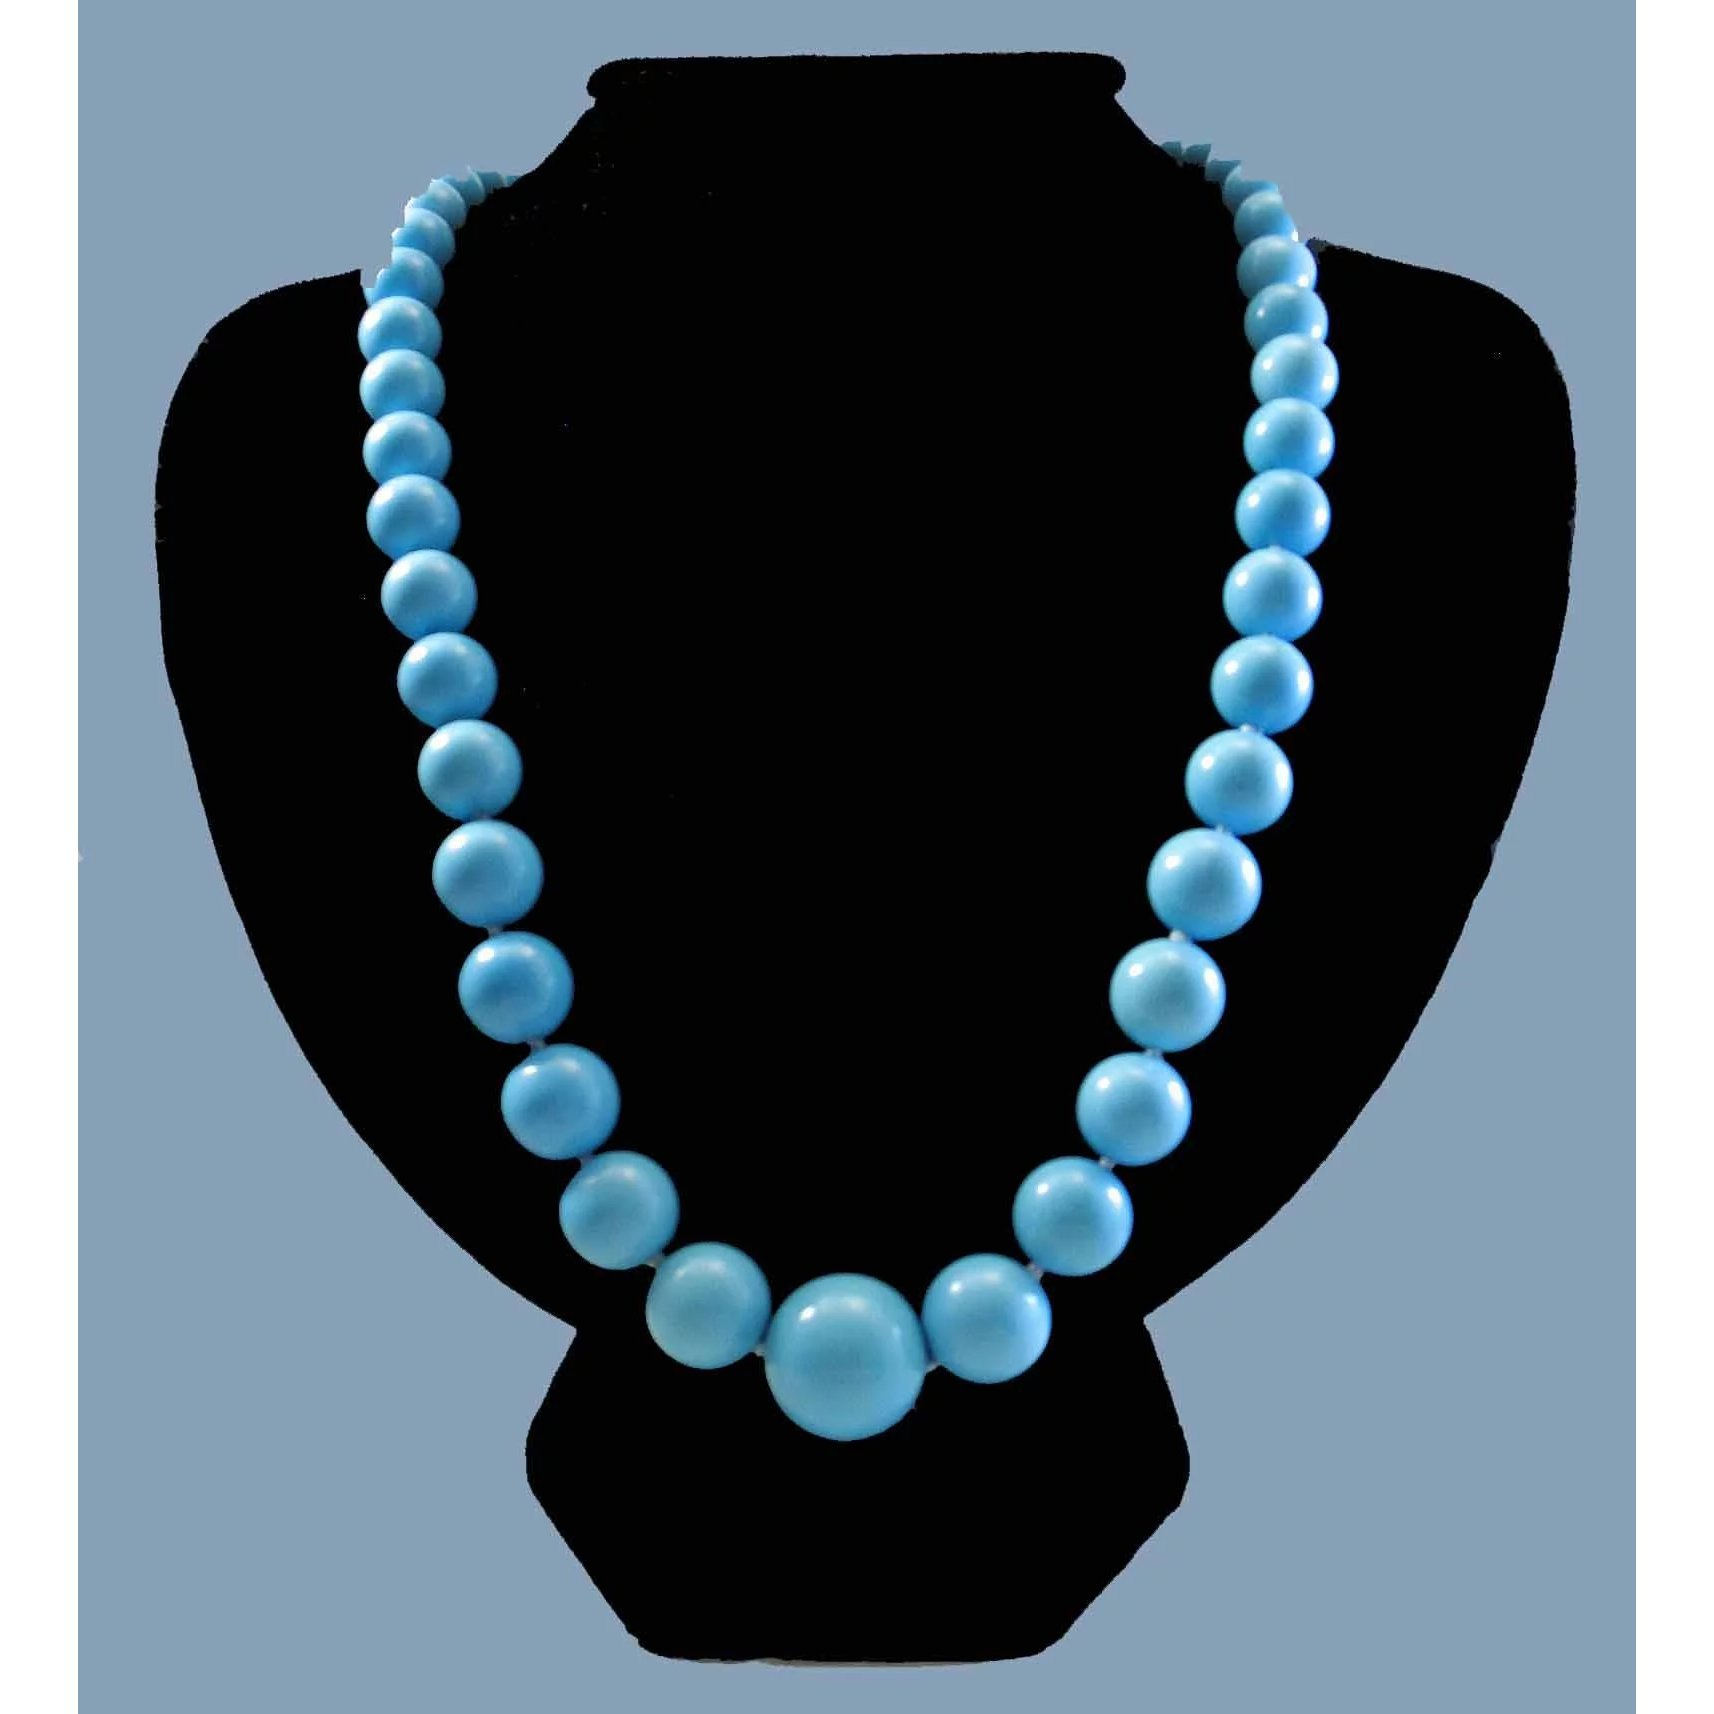 Perfection in Blue 14K Sleeping Beauty Turquoise 9 5-17mm Bead Necklace  23 5